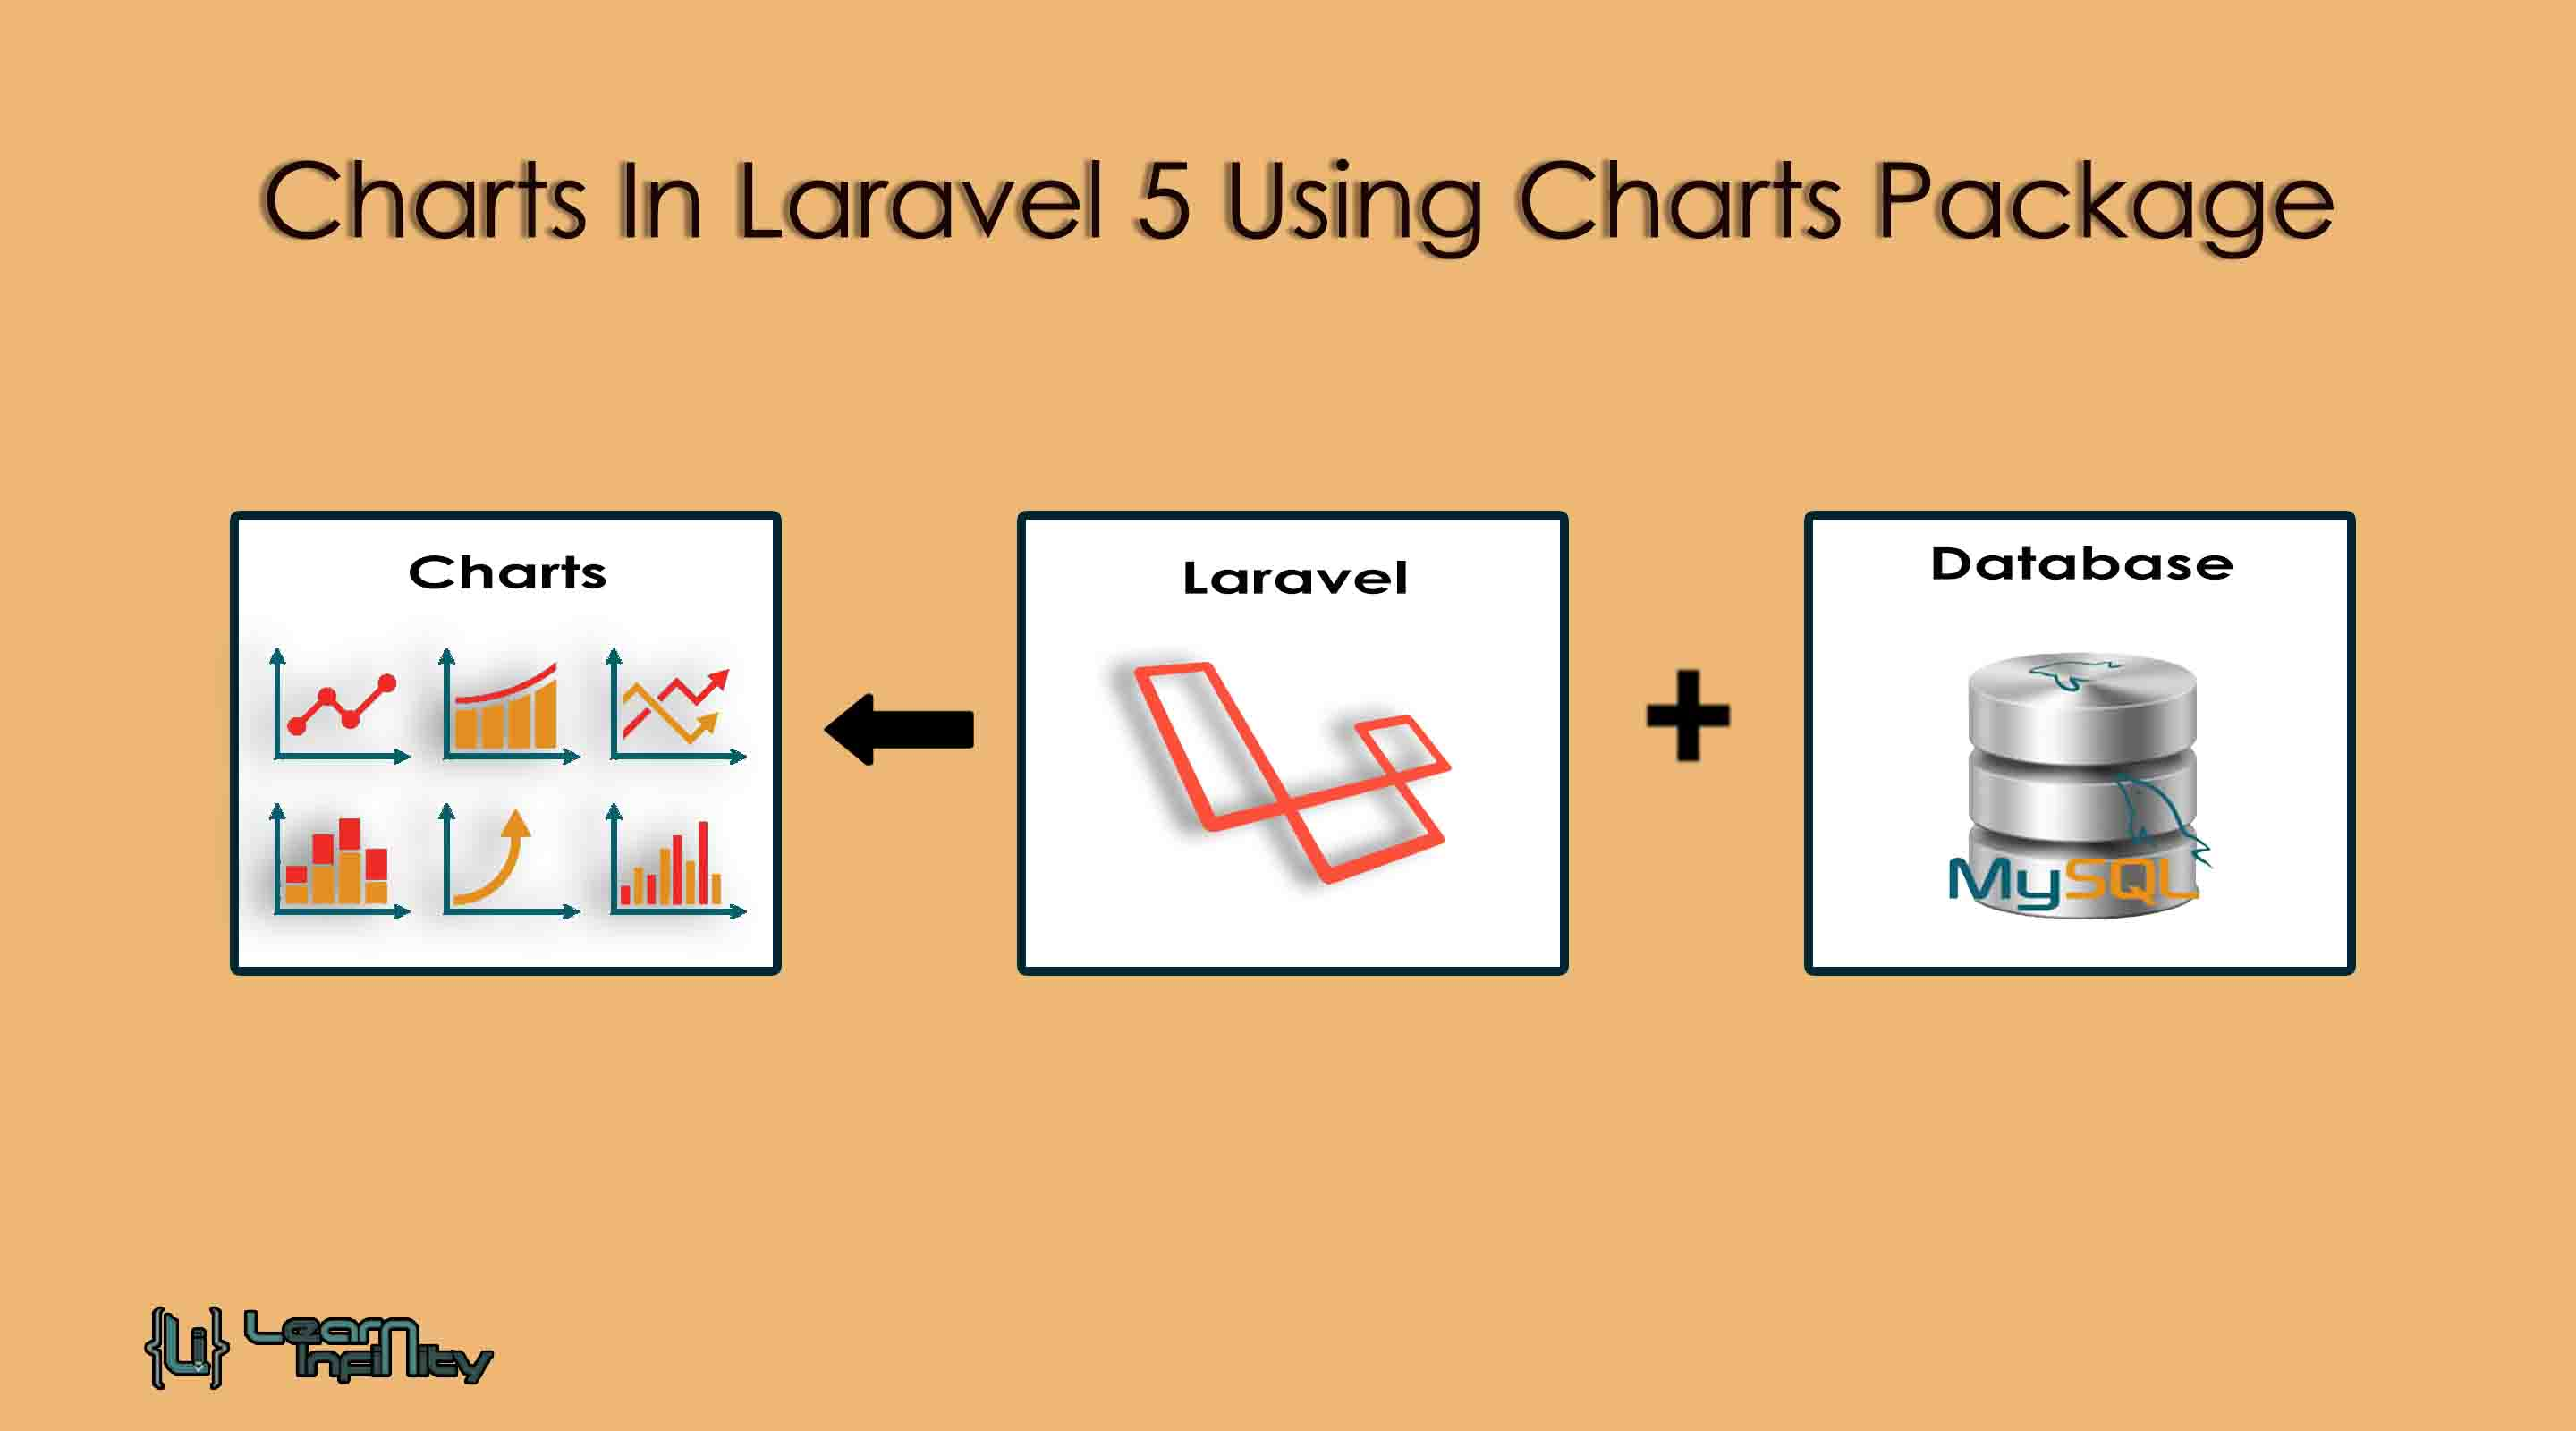 Charts In Laravel 5 Using Charts Package